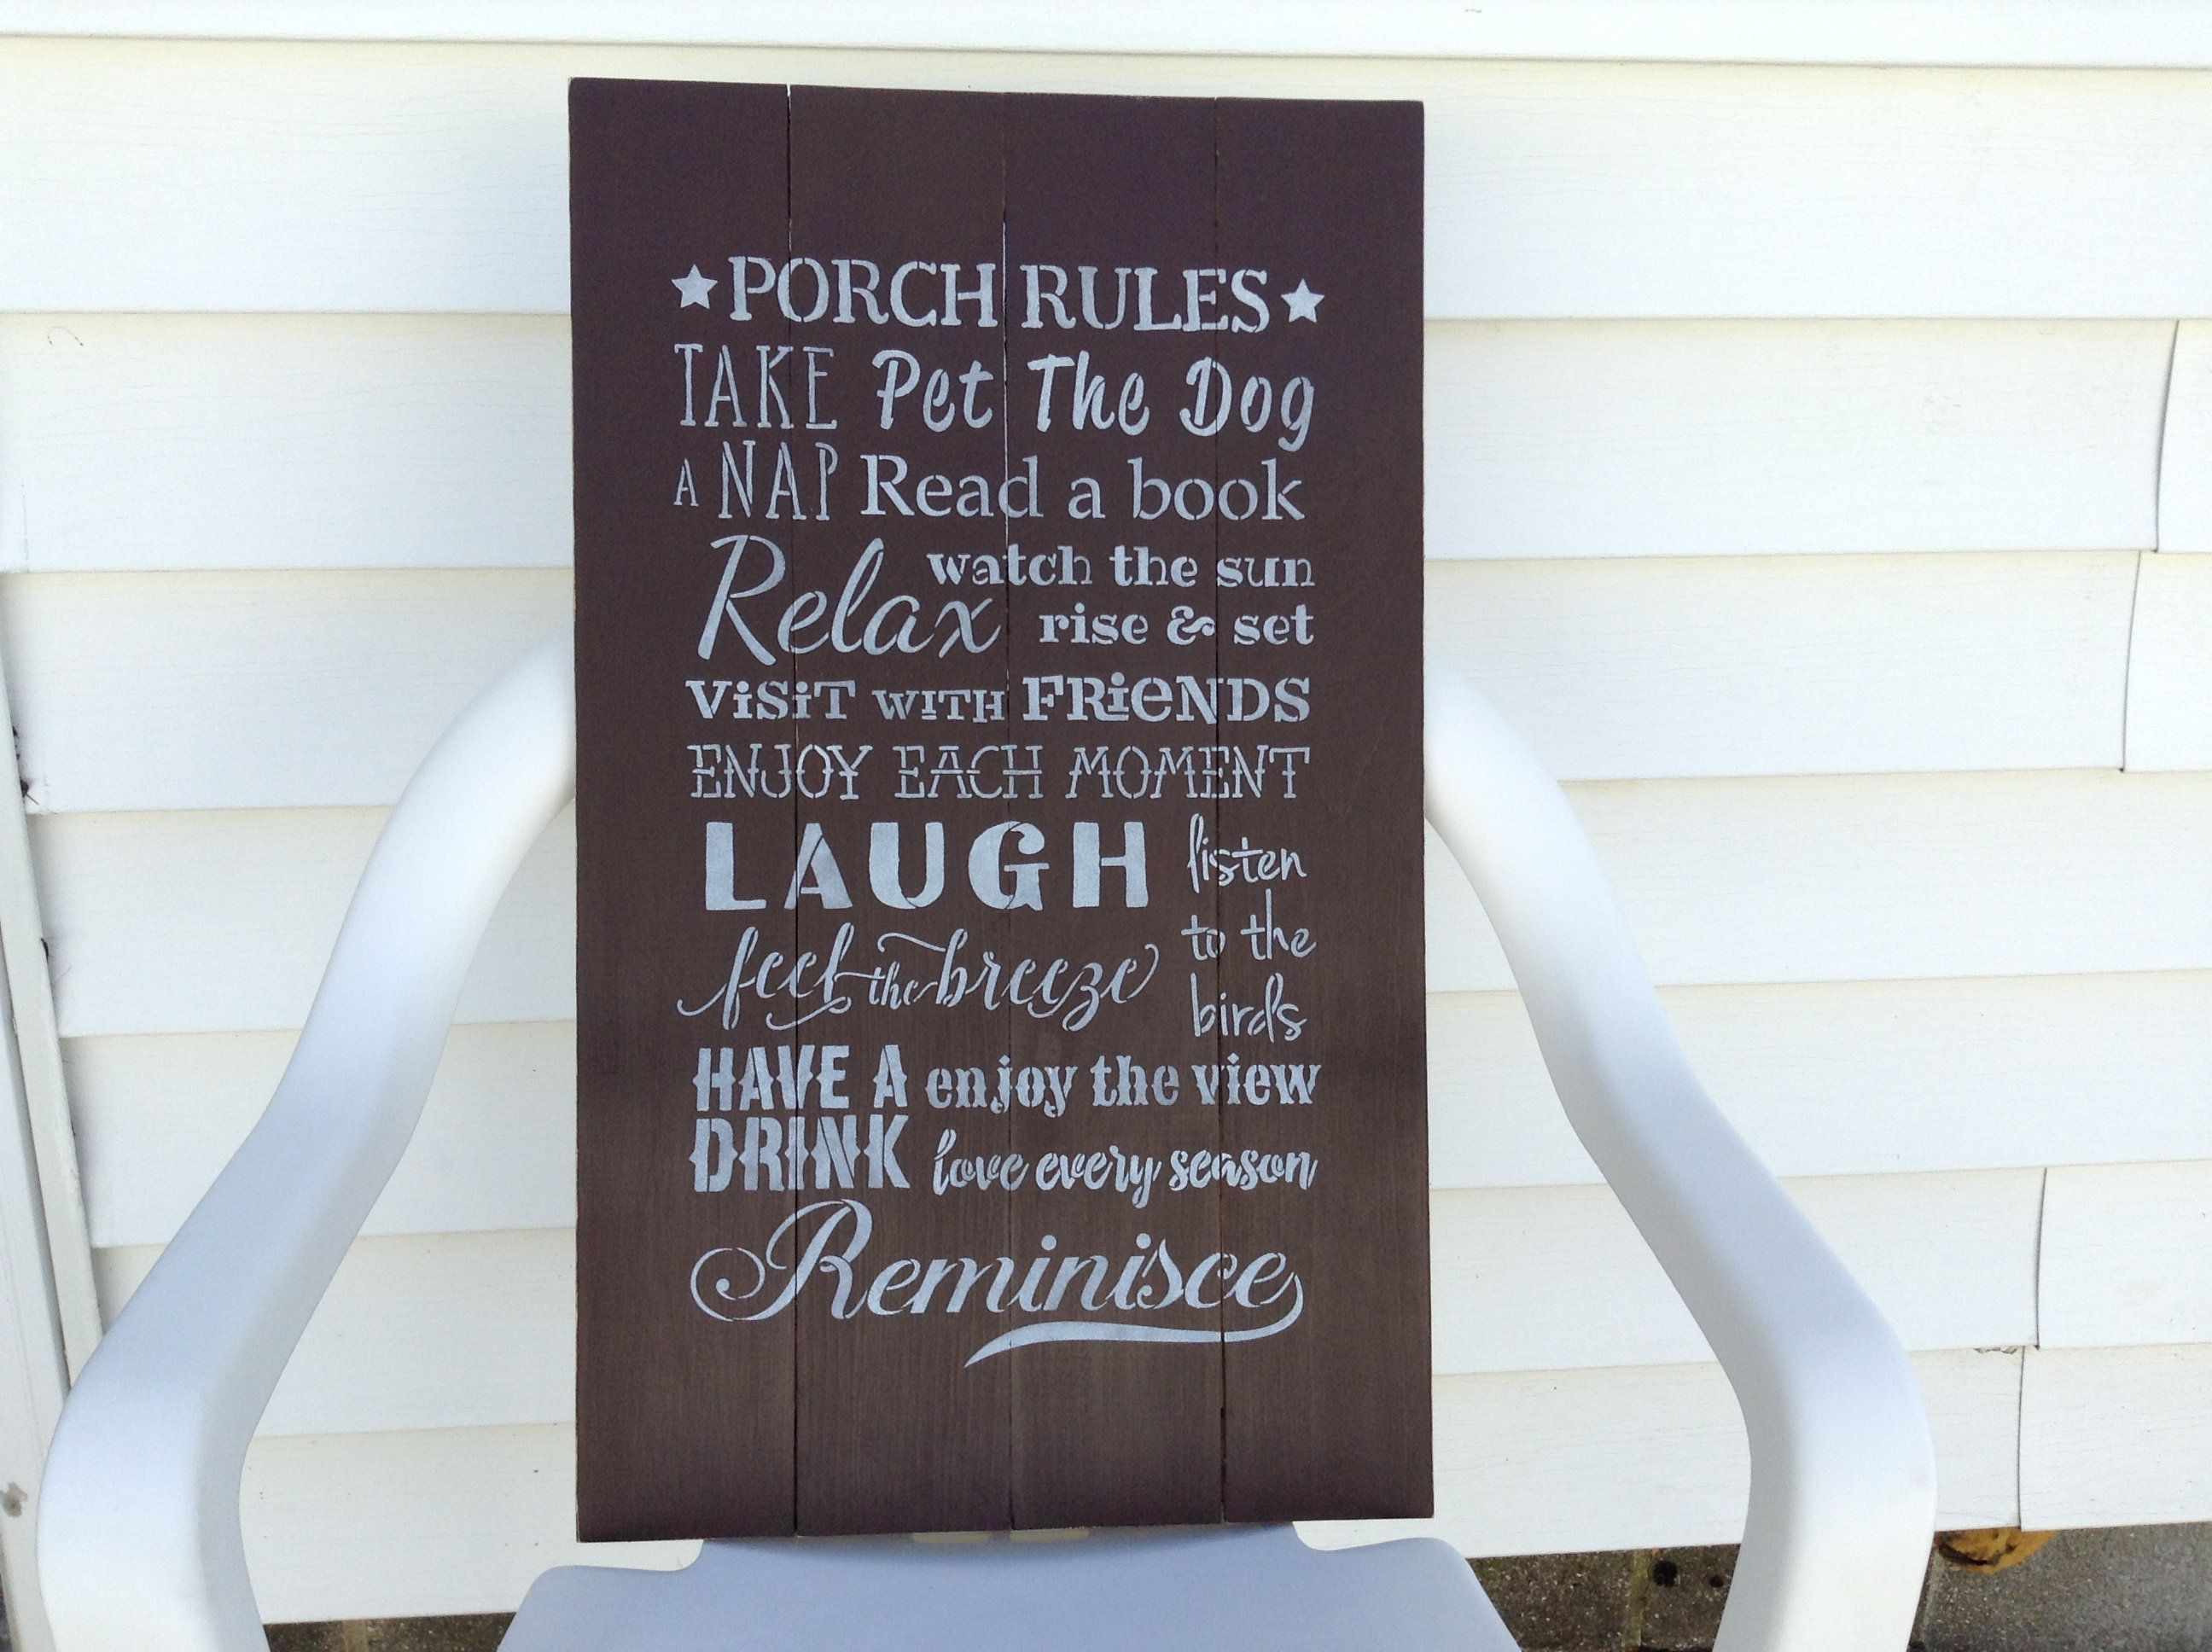 Large 24 By 14 Porch Rules Sign Front Porch Decor Summer Porch Decor Outdoor Summer Decor Back Porch Sign Outdoor Wall Sign Rustic In 2020 Porch Rules Sign Front Porch Decorating